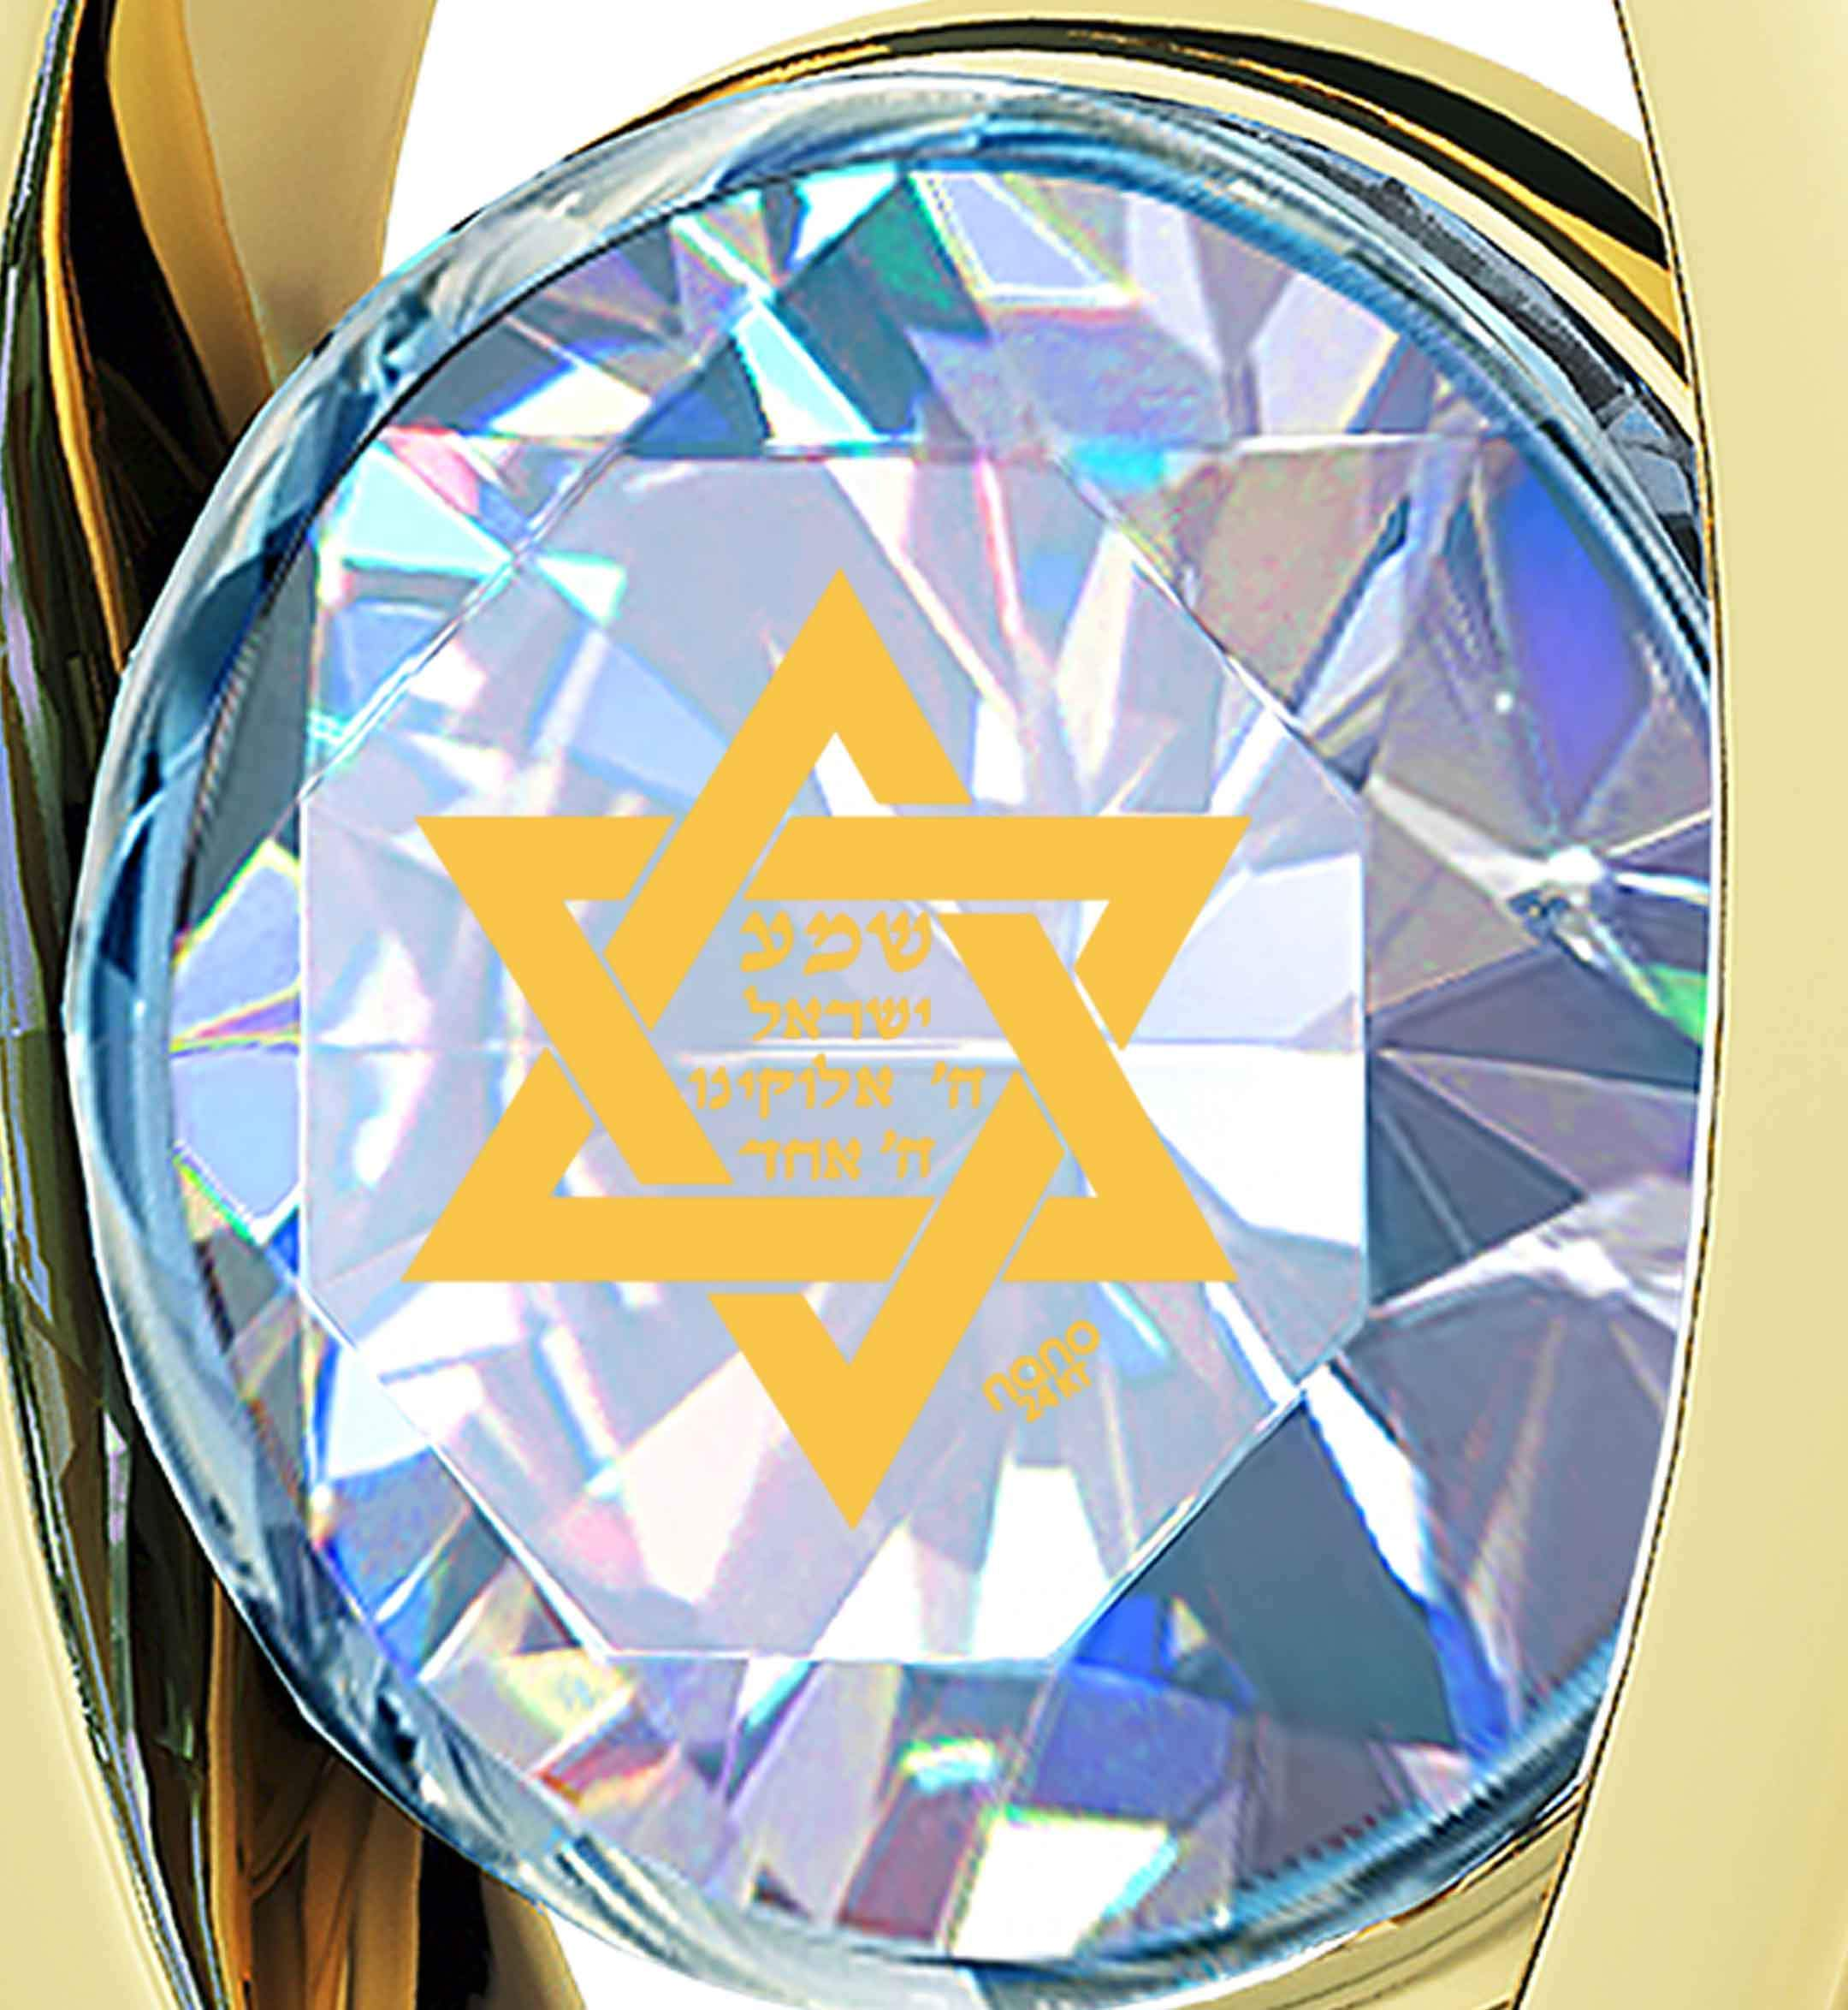 """Shema Yisrael"" Engraved in 24k, Israeli Jewelry with White Stone Pendant, Judaica Gifts, Nano Jewelry"